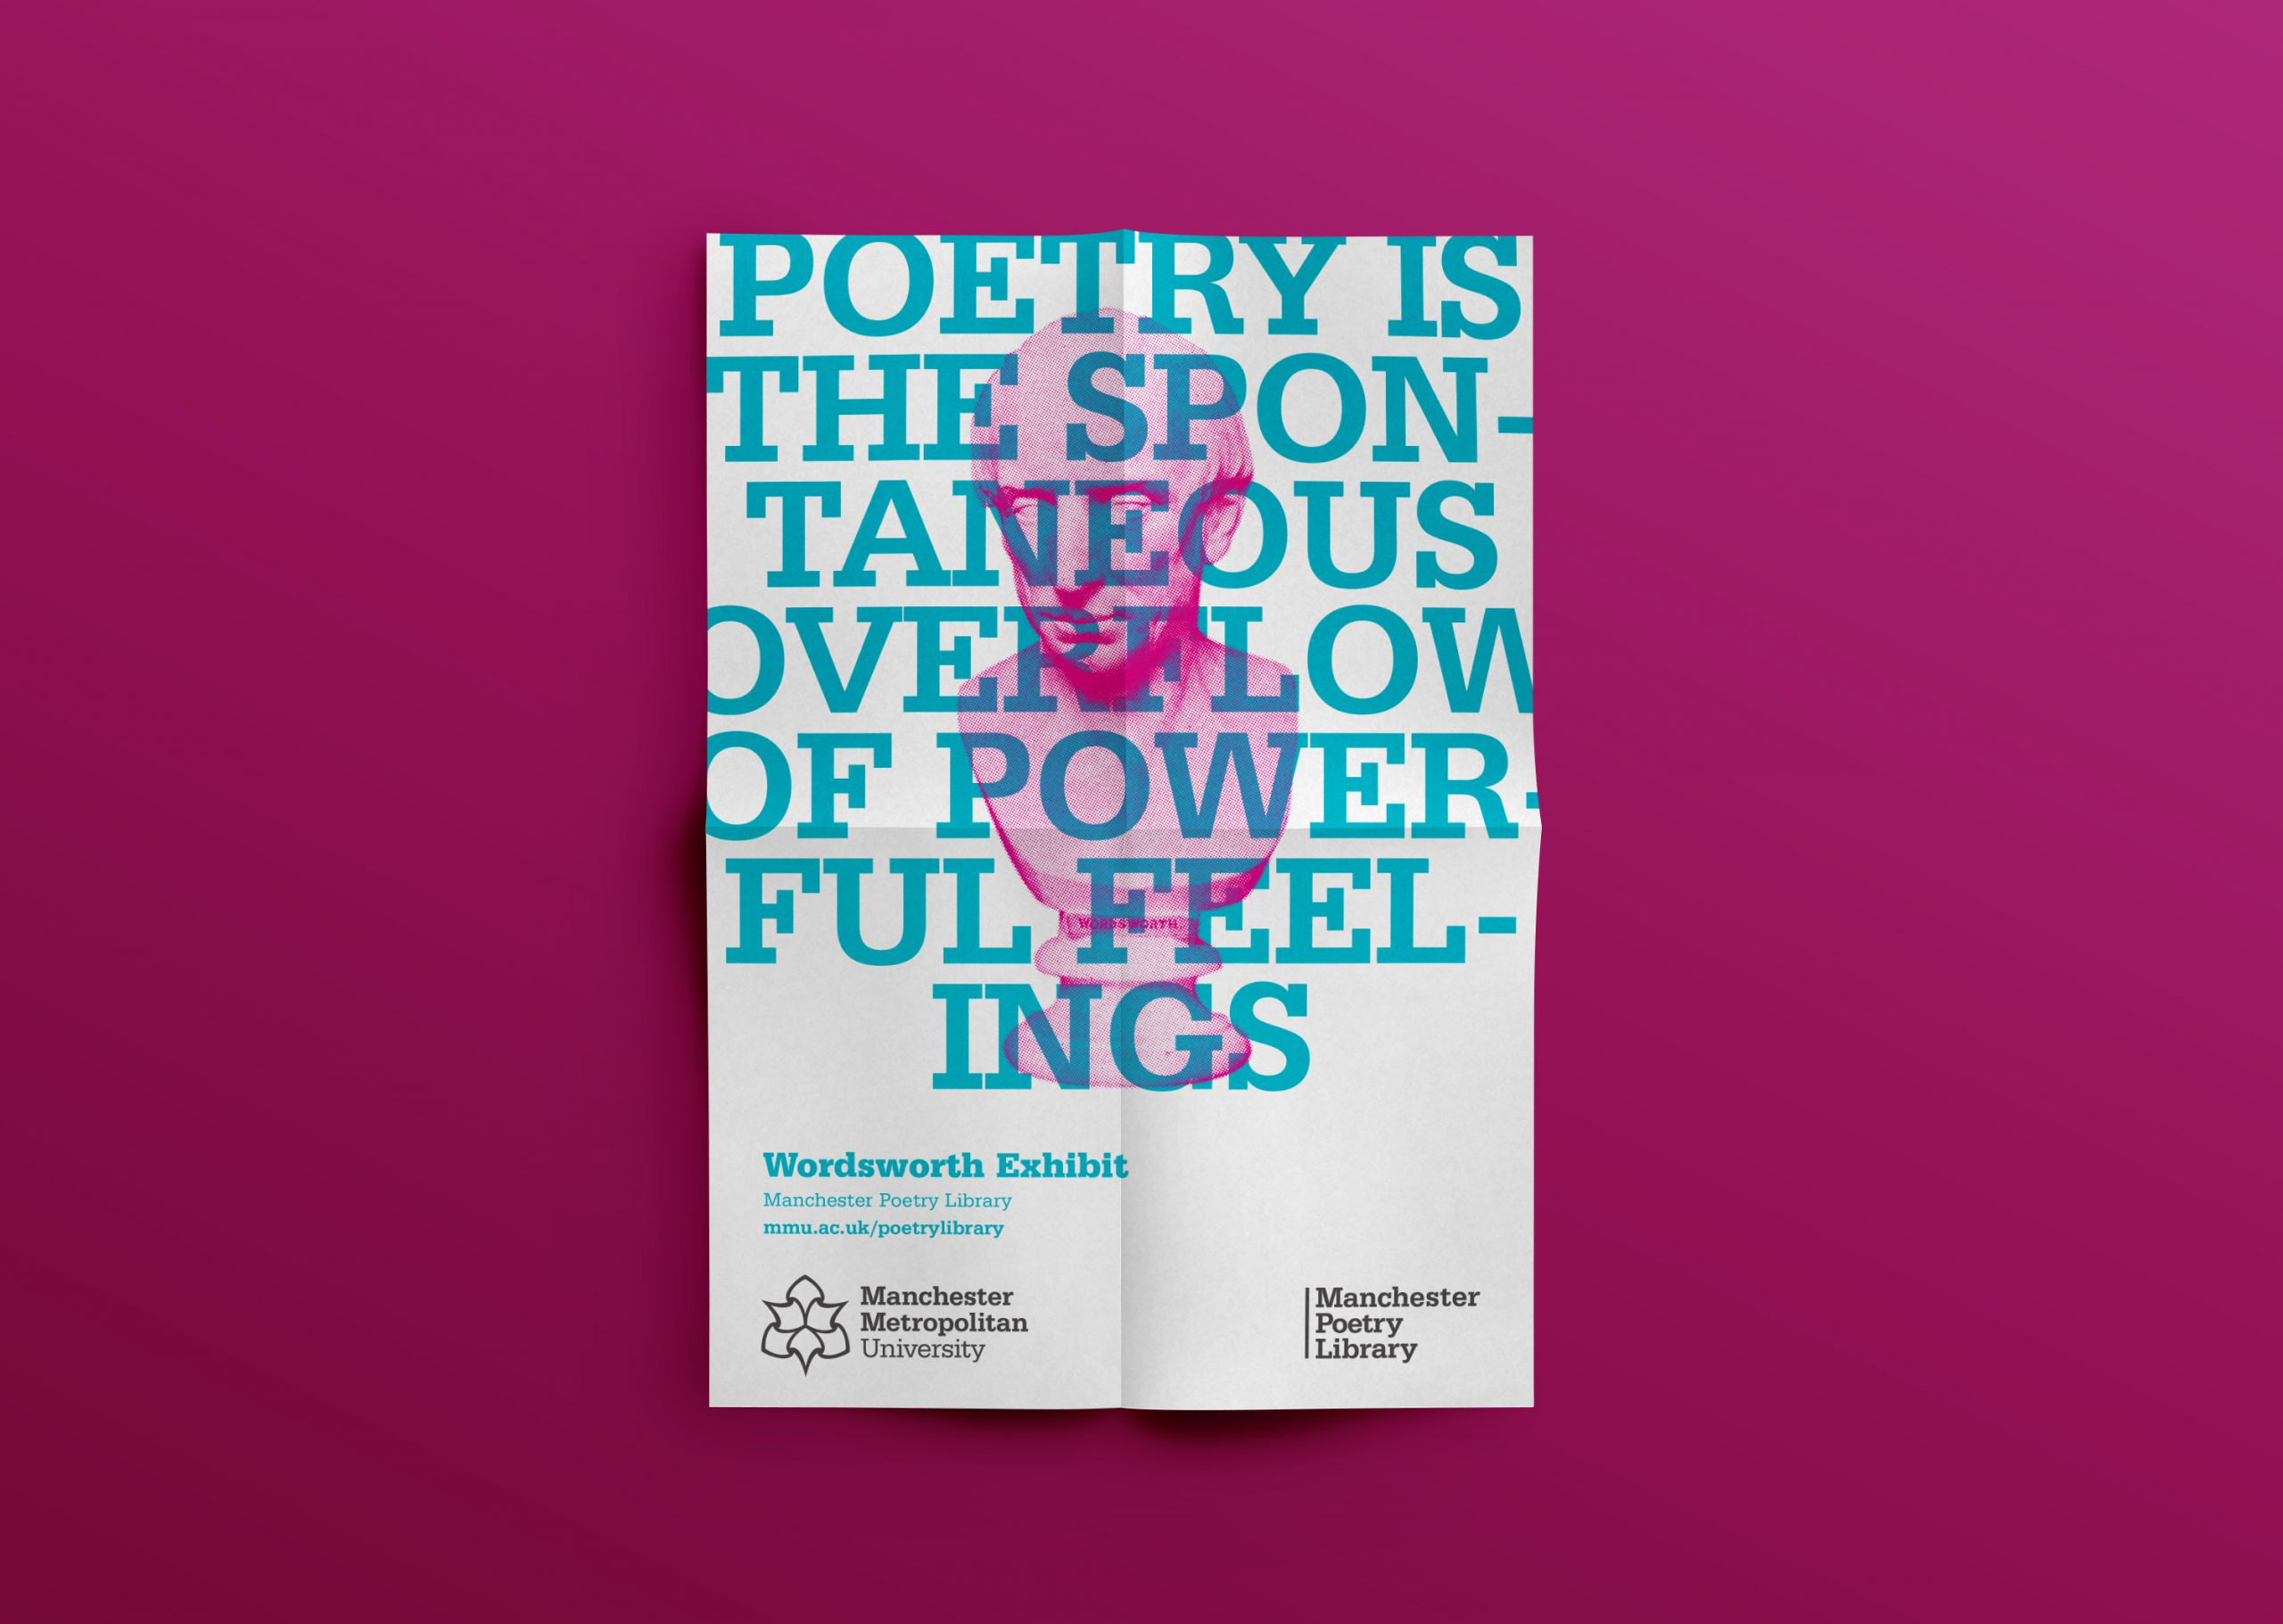 poster with print of pink bust of wordsworth and the words 'poetry is the spontaneous overflow of powerful feelings'